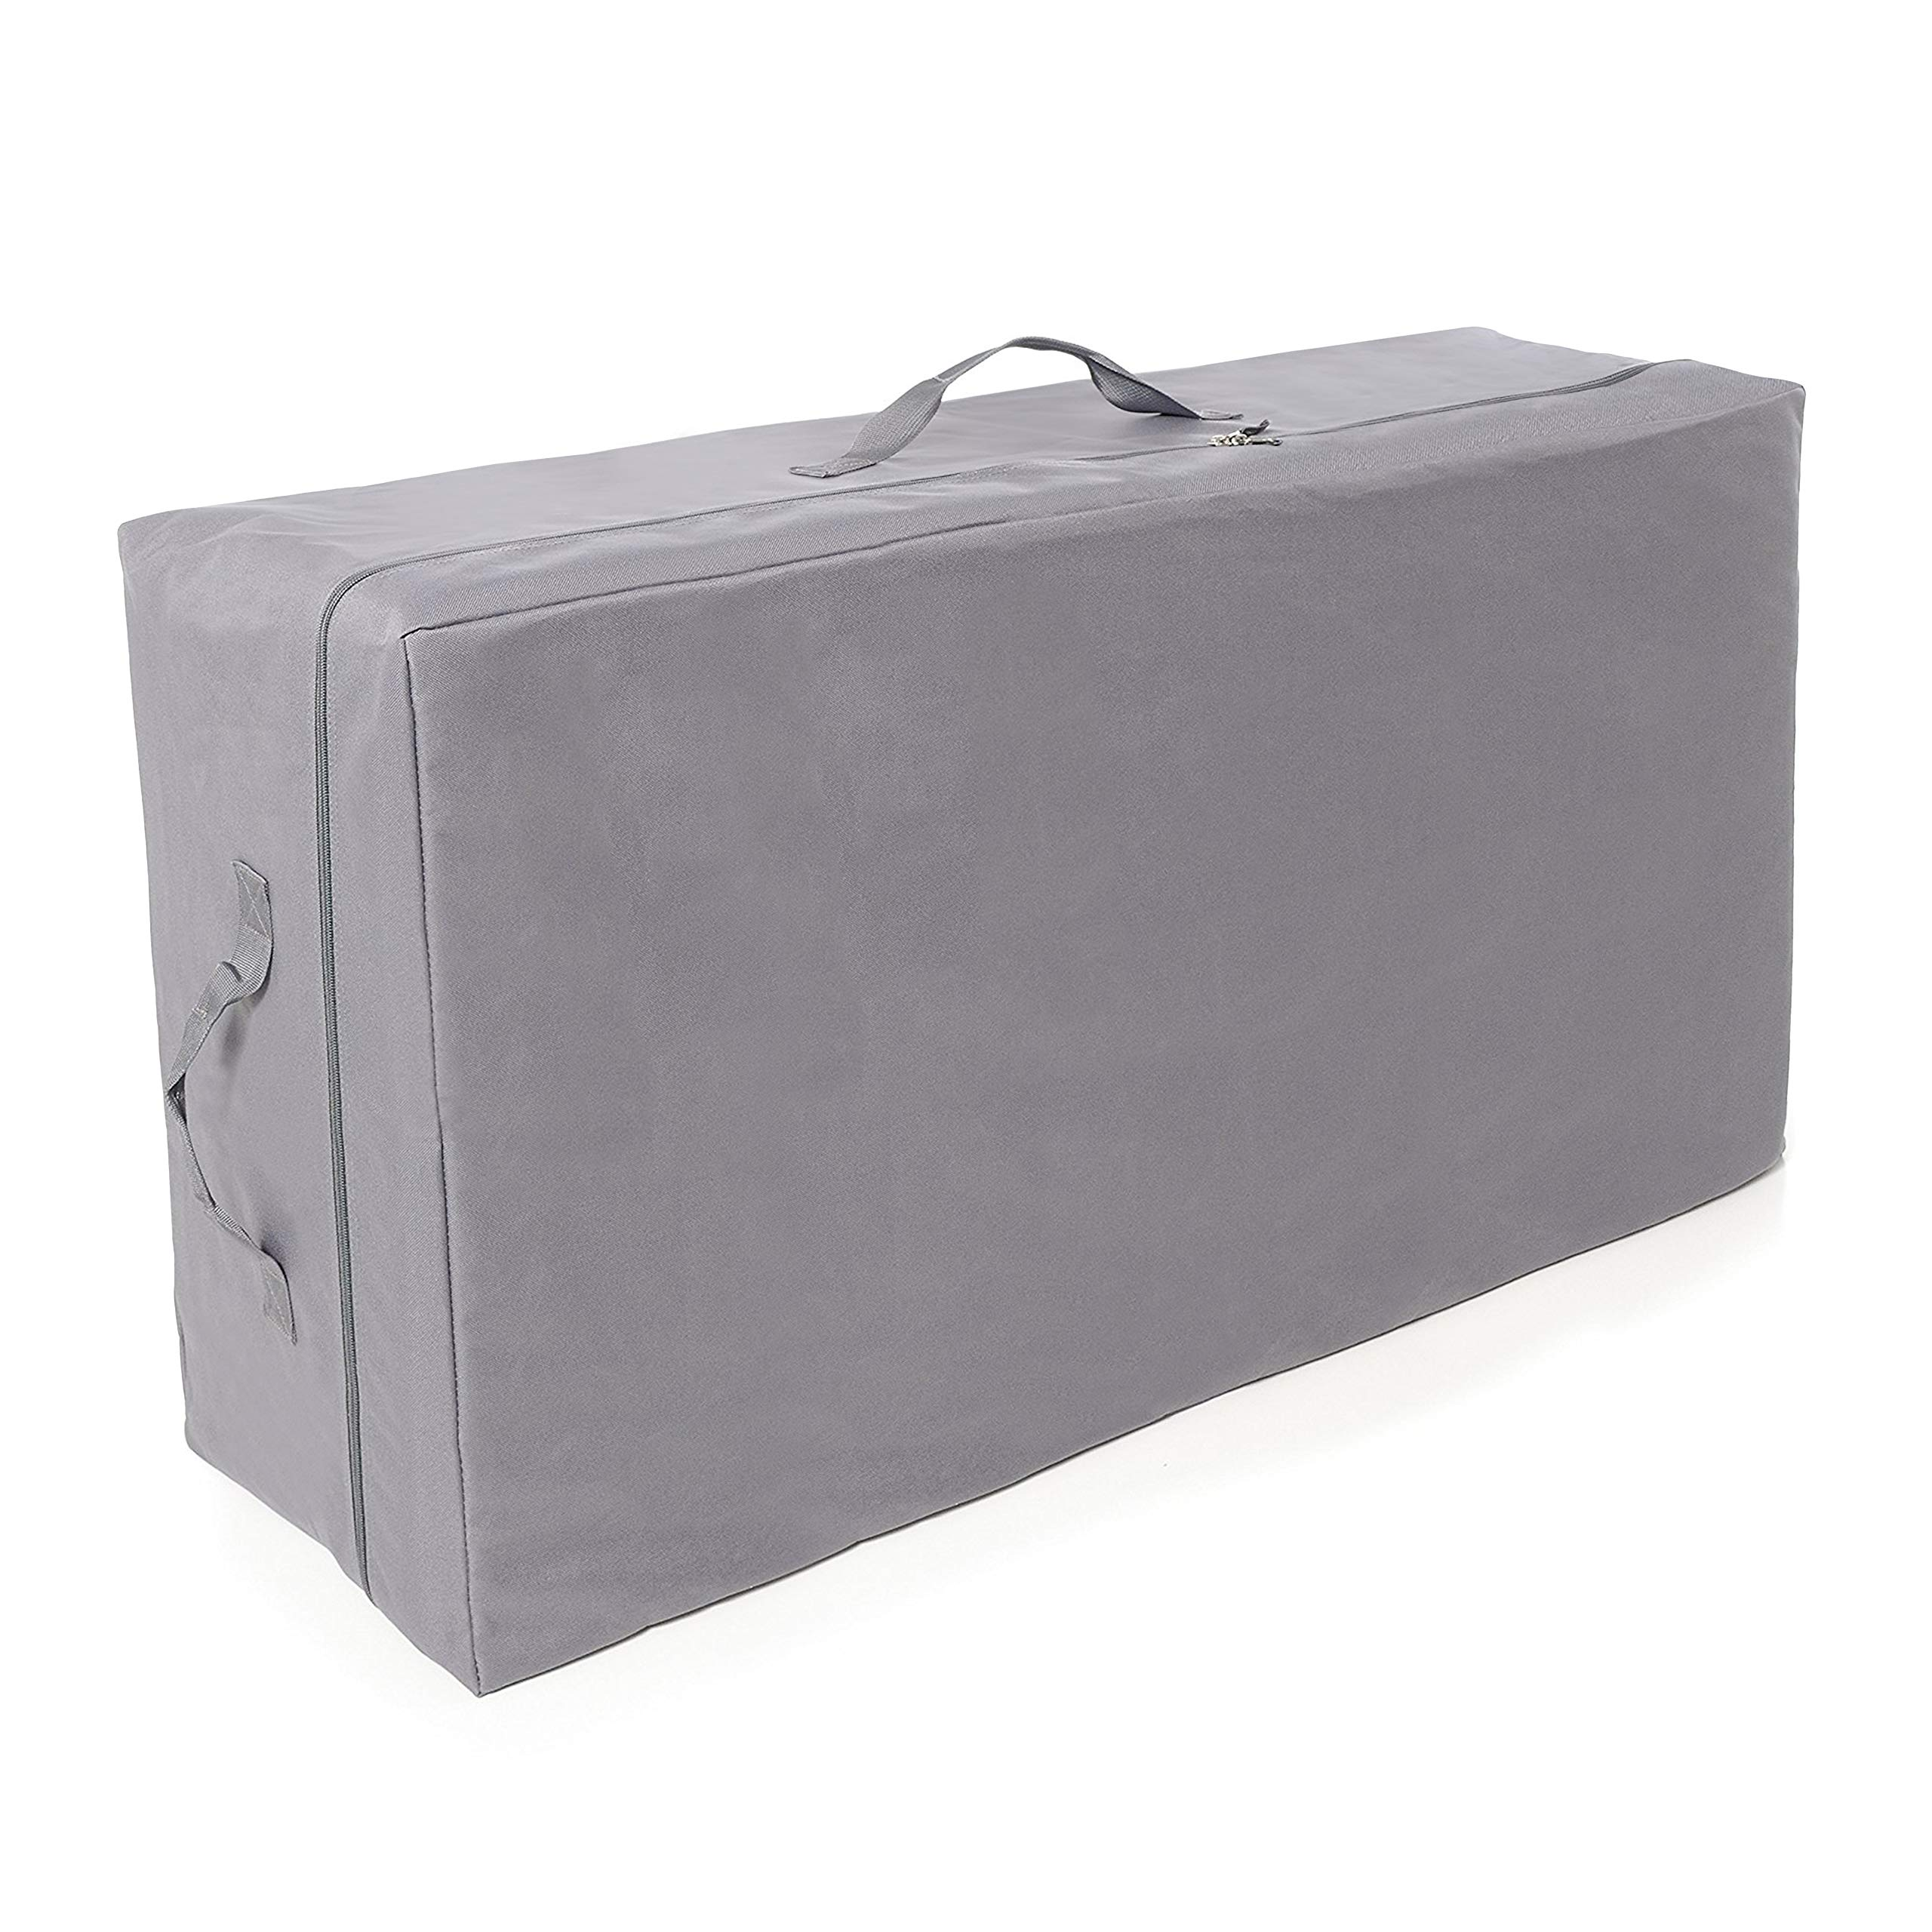 Carry Case for Milliard Tri-Fold Mattress (6 inch Queen) by Milliard